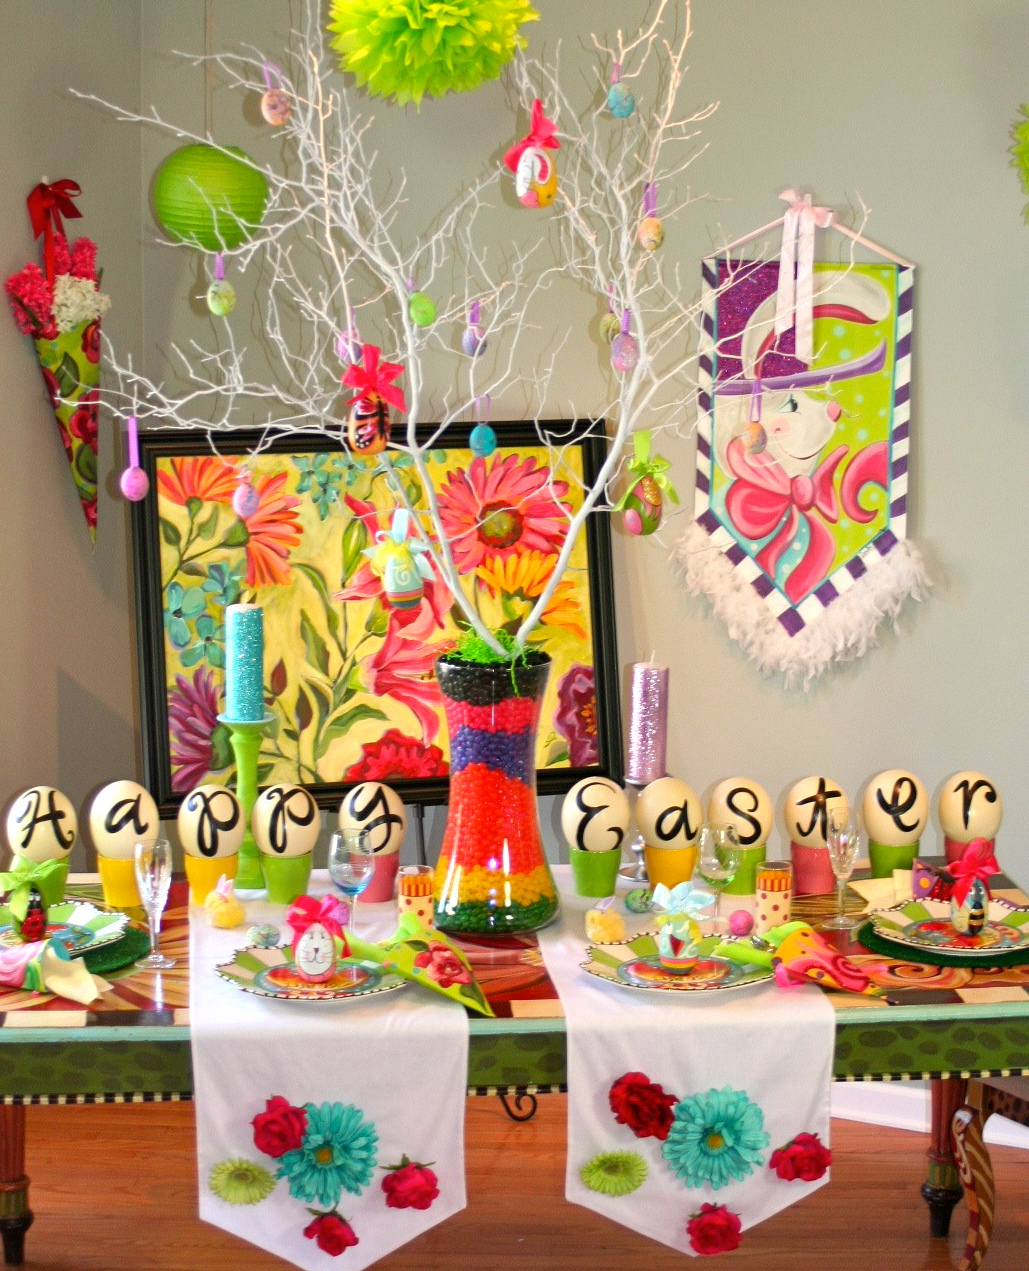 Lisa frost diy table for easter her working studio is located in her